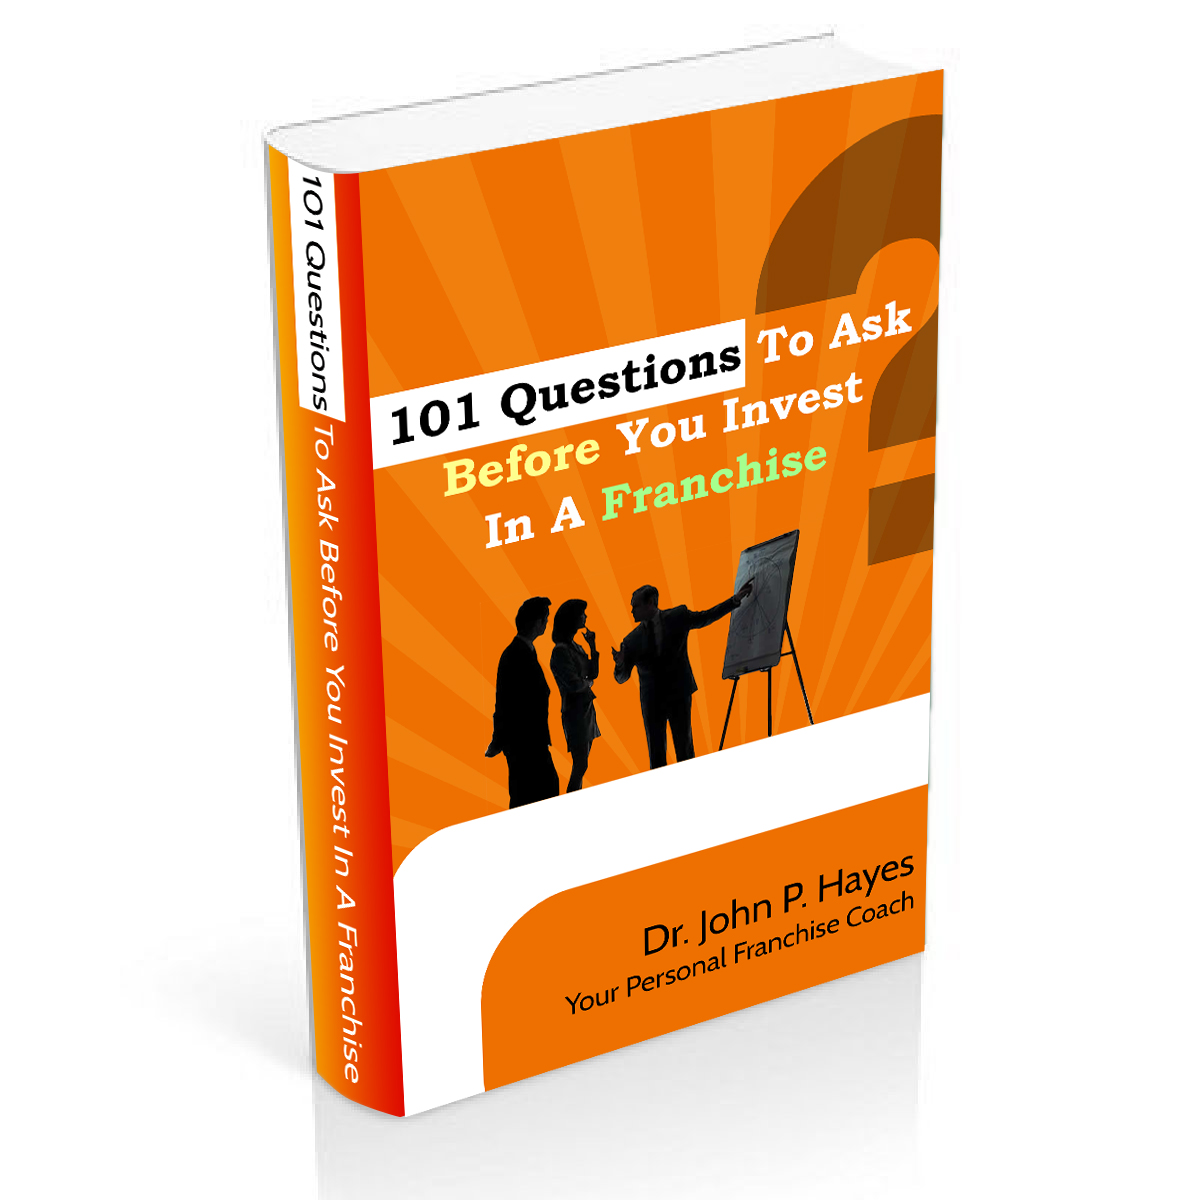 ... Ask Before You Invest in a Franchise. 3D-101-Questions -ebook-CoverfiverrWorkNew-copy